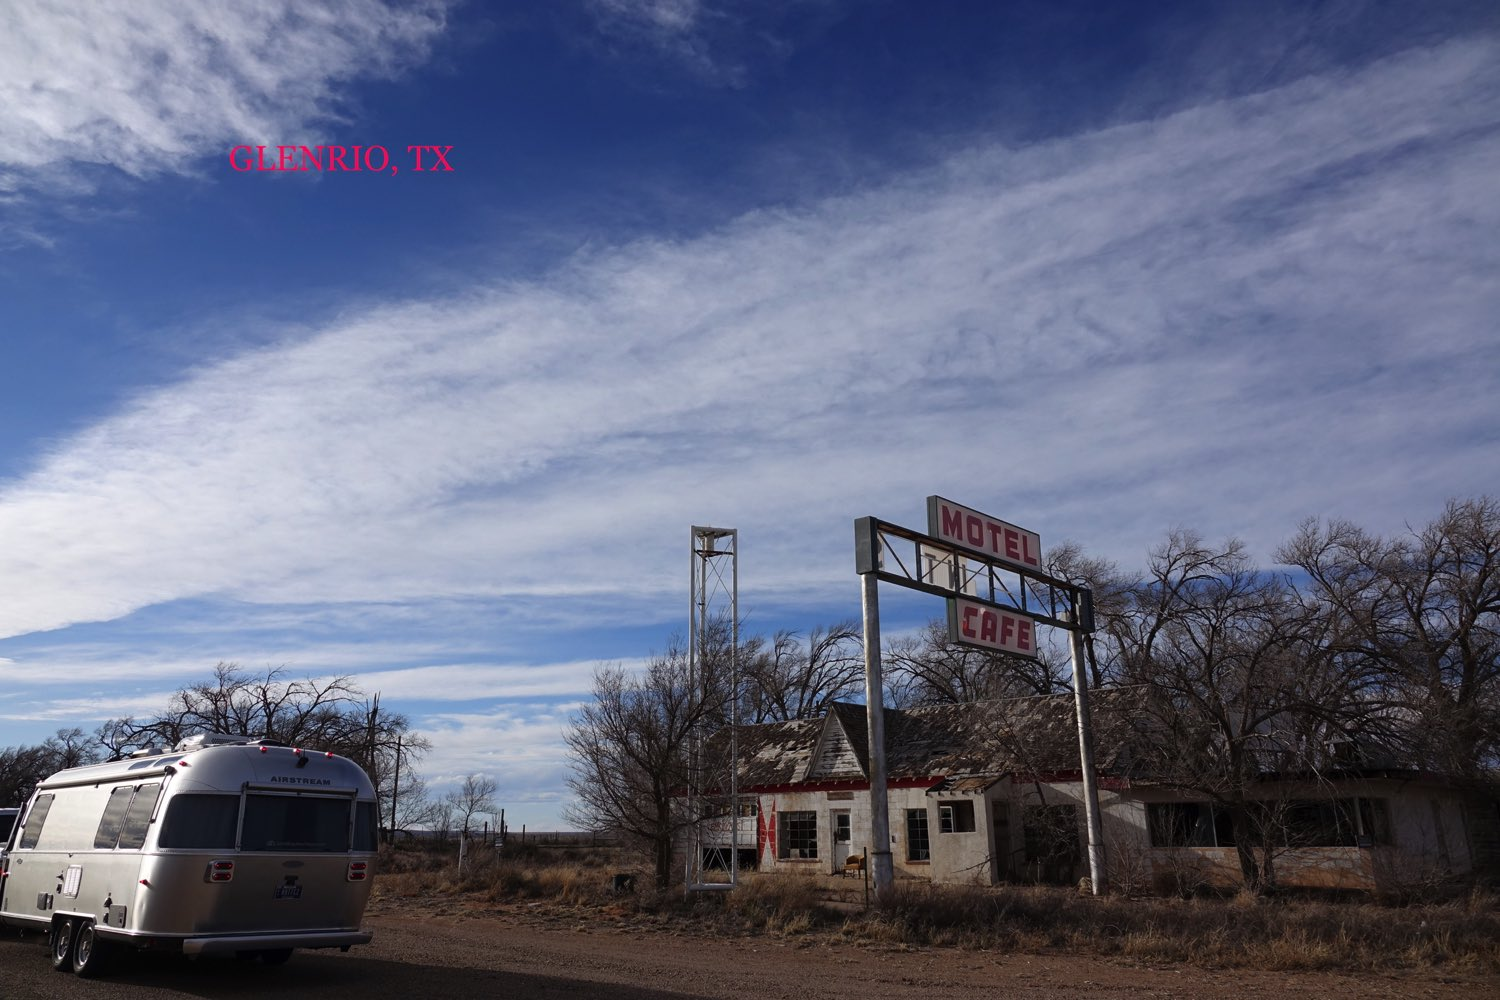 Last Motel in Texas, Glenrio